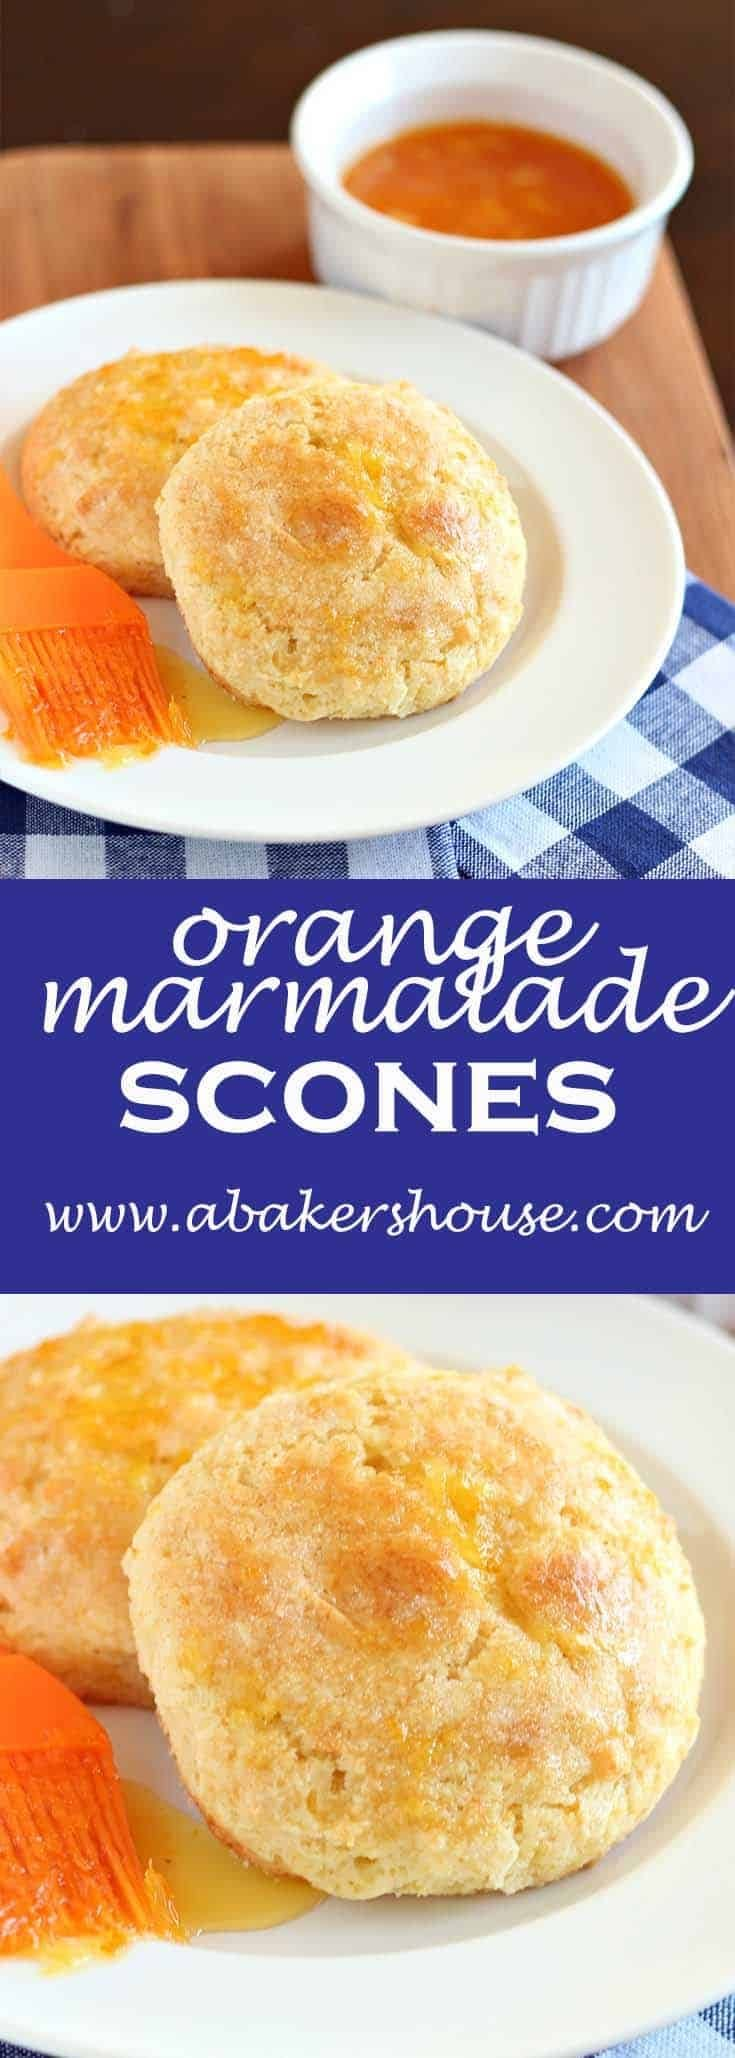 Orange marmalade scones are filled with bold, citrus flavors to perk up your day. Orange marmalade is in the scone dough and can be used on top too. Serve with tea and clotted cream if you are feeling especially British and are making the most of tea time. #abakershouse #scones #marmalade #orange